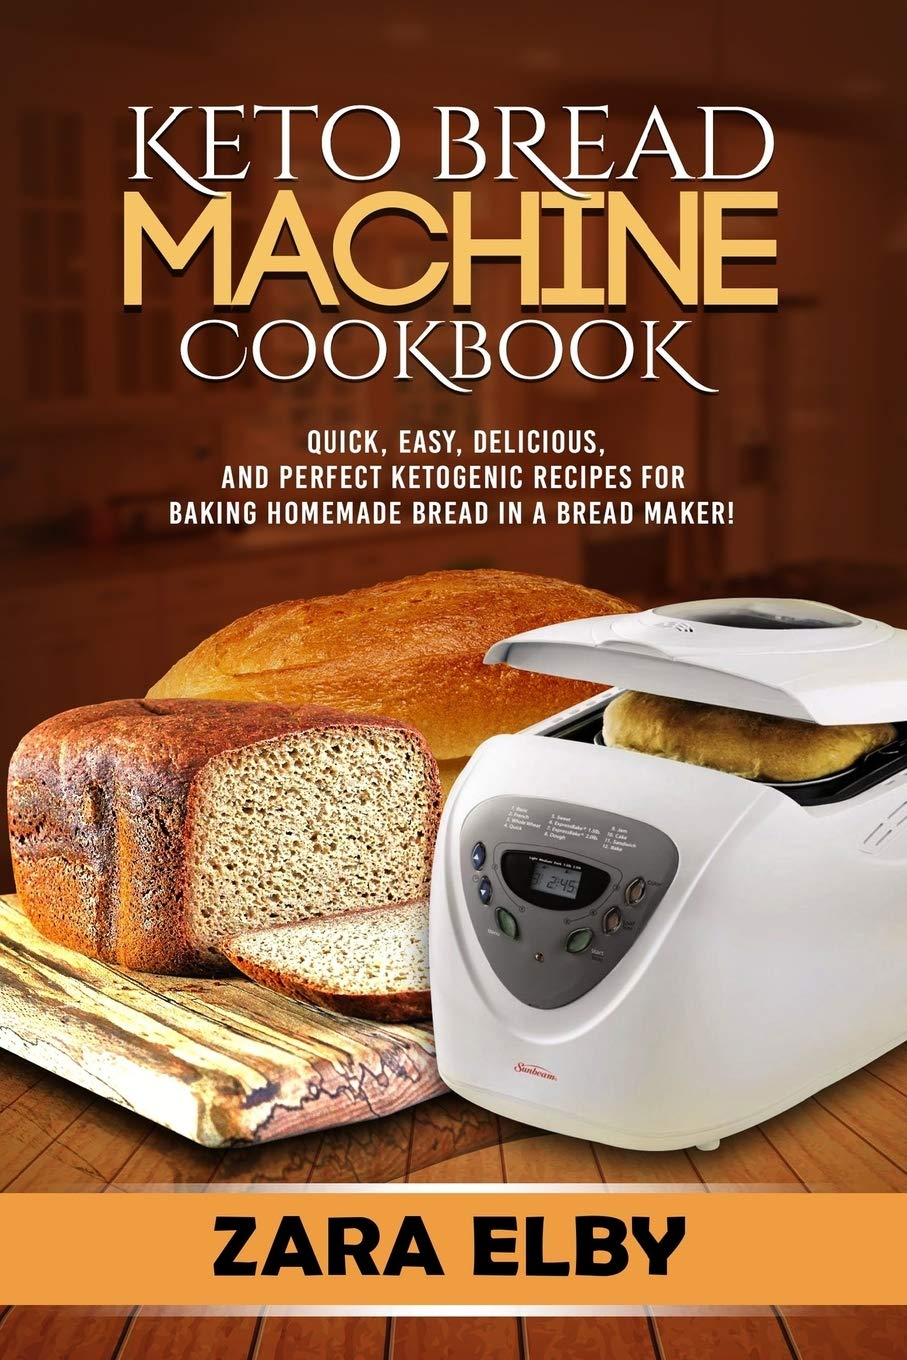 Keto Bread Machine Cookbook: Quick, Easy, Delicious, and Perfect Ketogenic Recipes for Baking Homemade Bread in a Bread Maker! 1